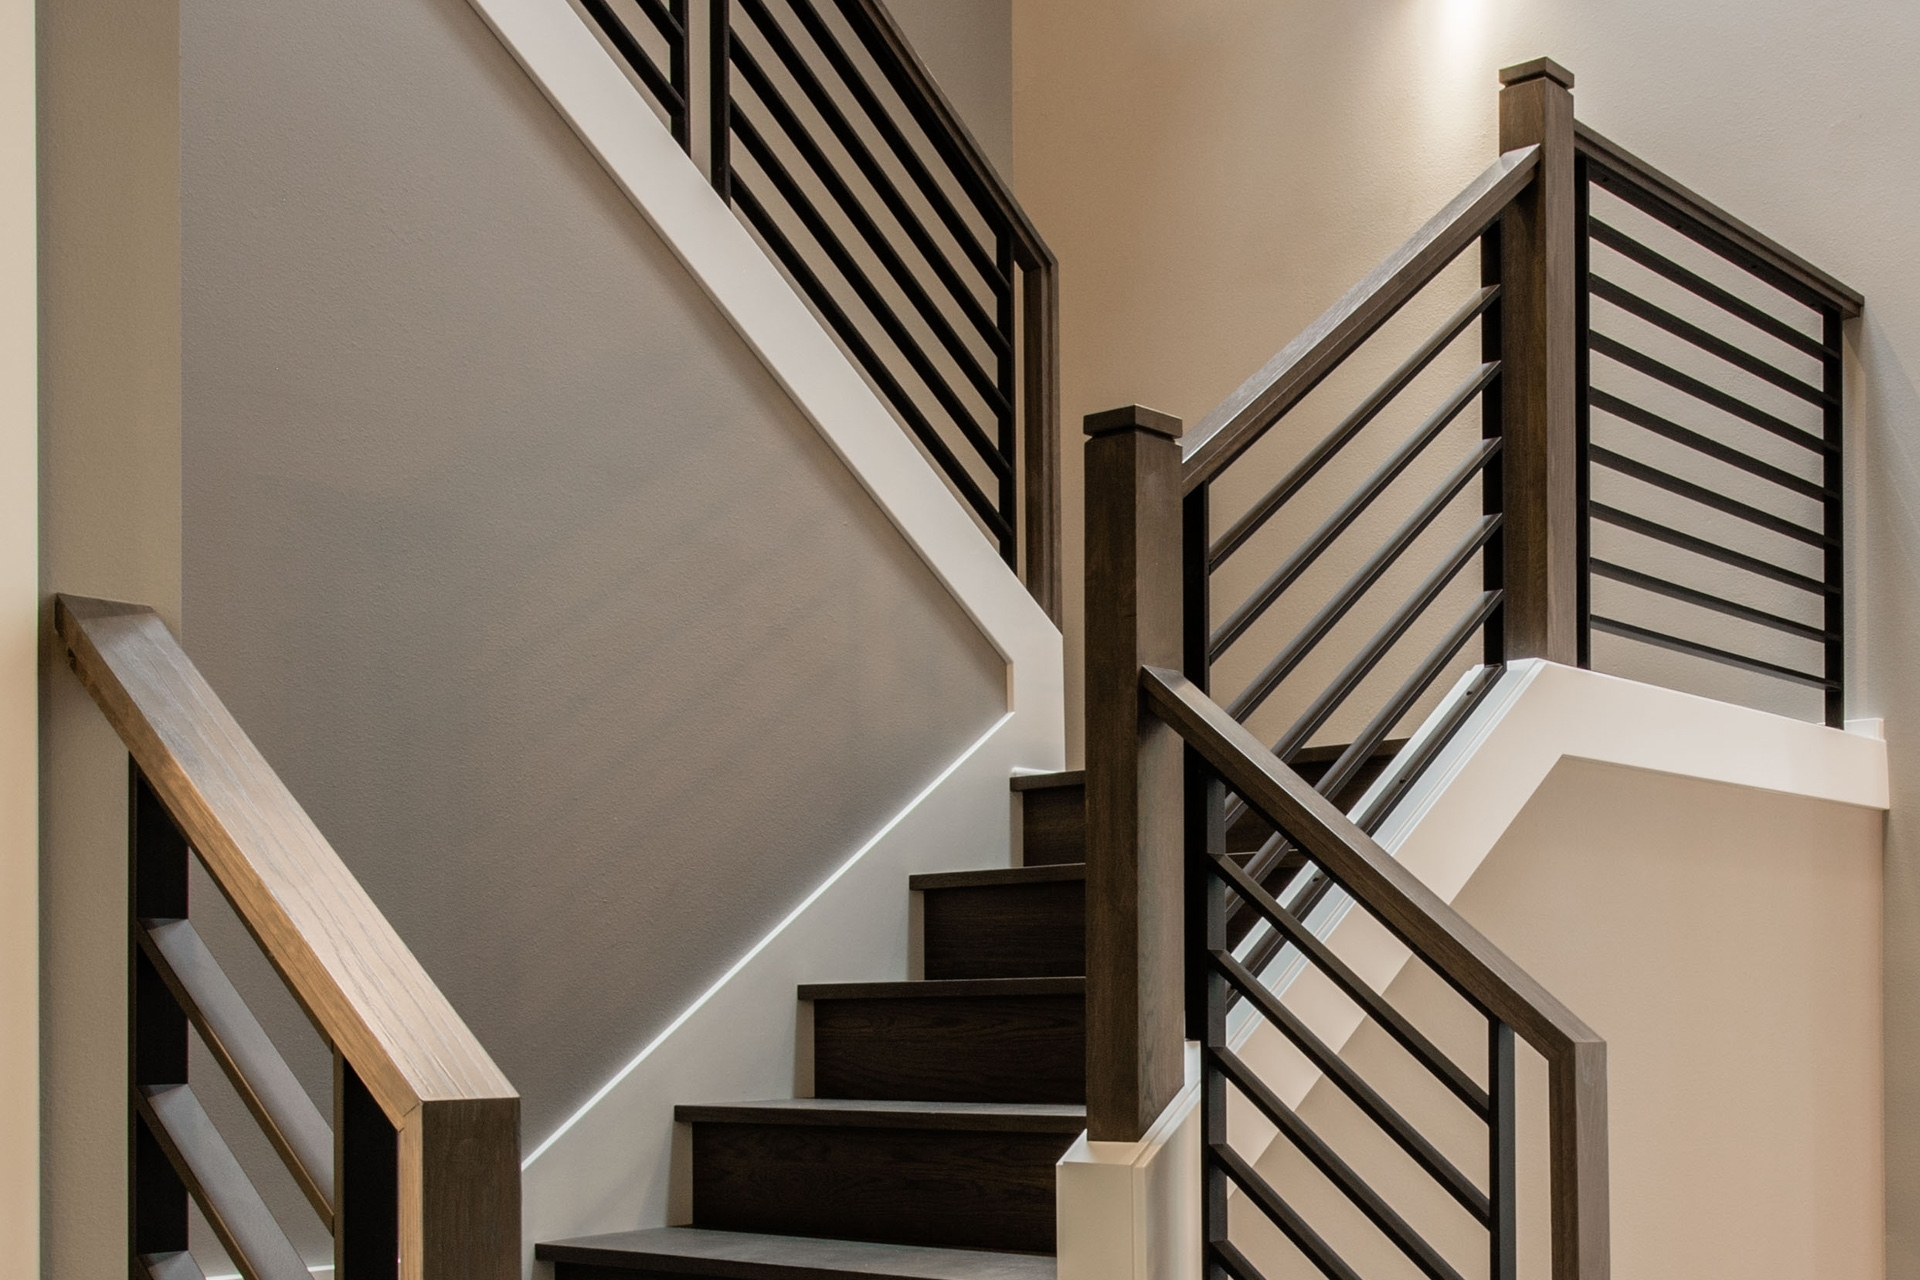 Stair Systems Stairs Stair Parts Newels Balusters And | Wood Handrail With Iron Balusters | Stairway | Wooden | Copper | Cast Iron | Landing